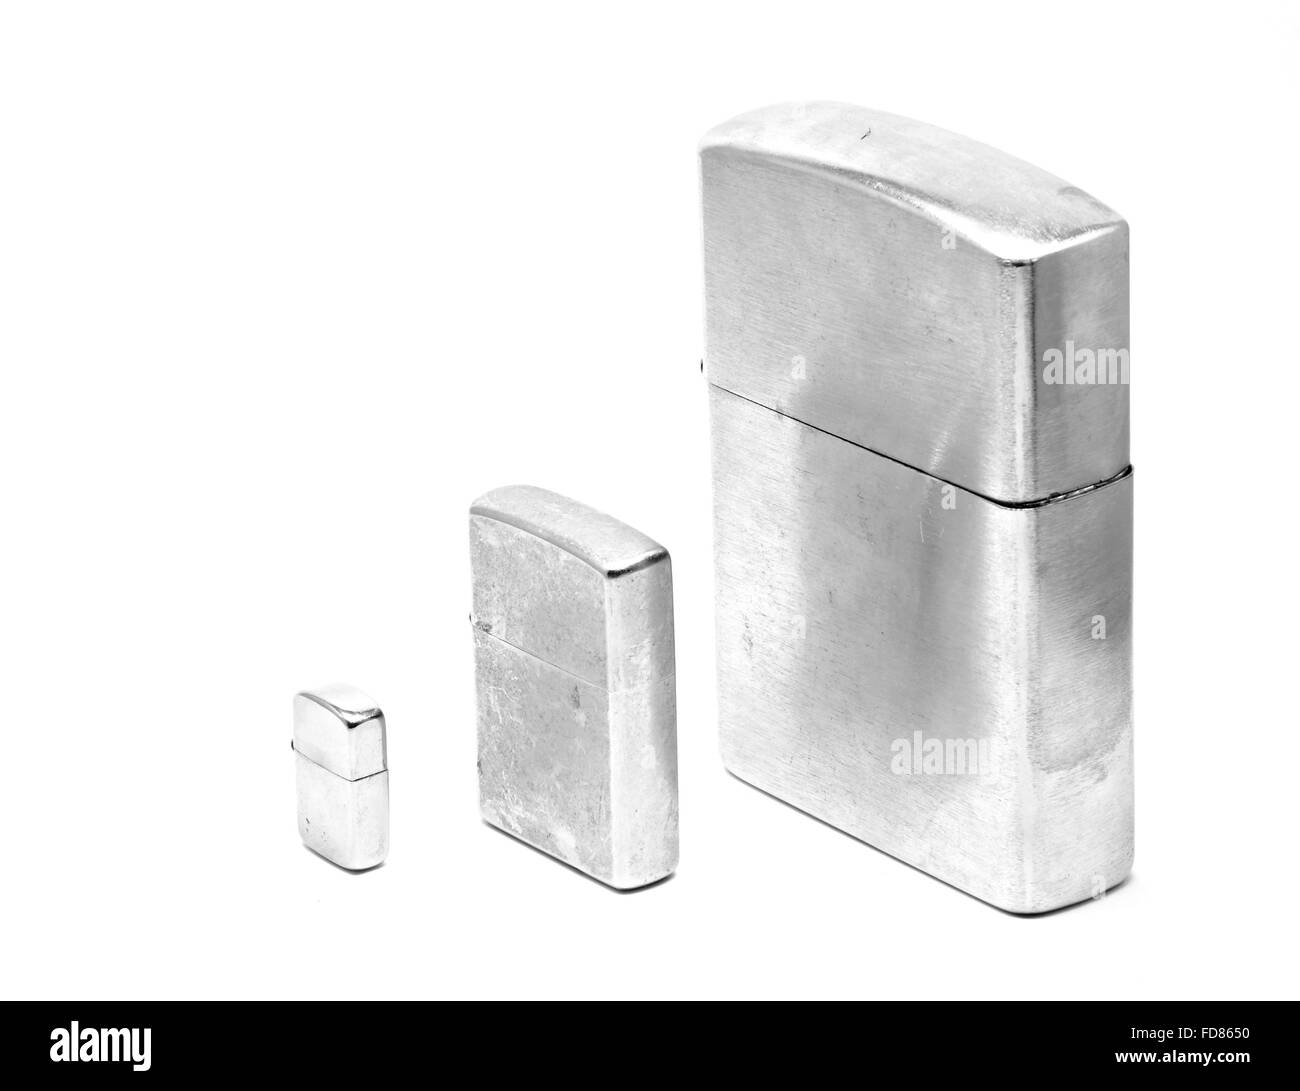 Three different sizes of metallic lighters with cap closed - Stock Image